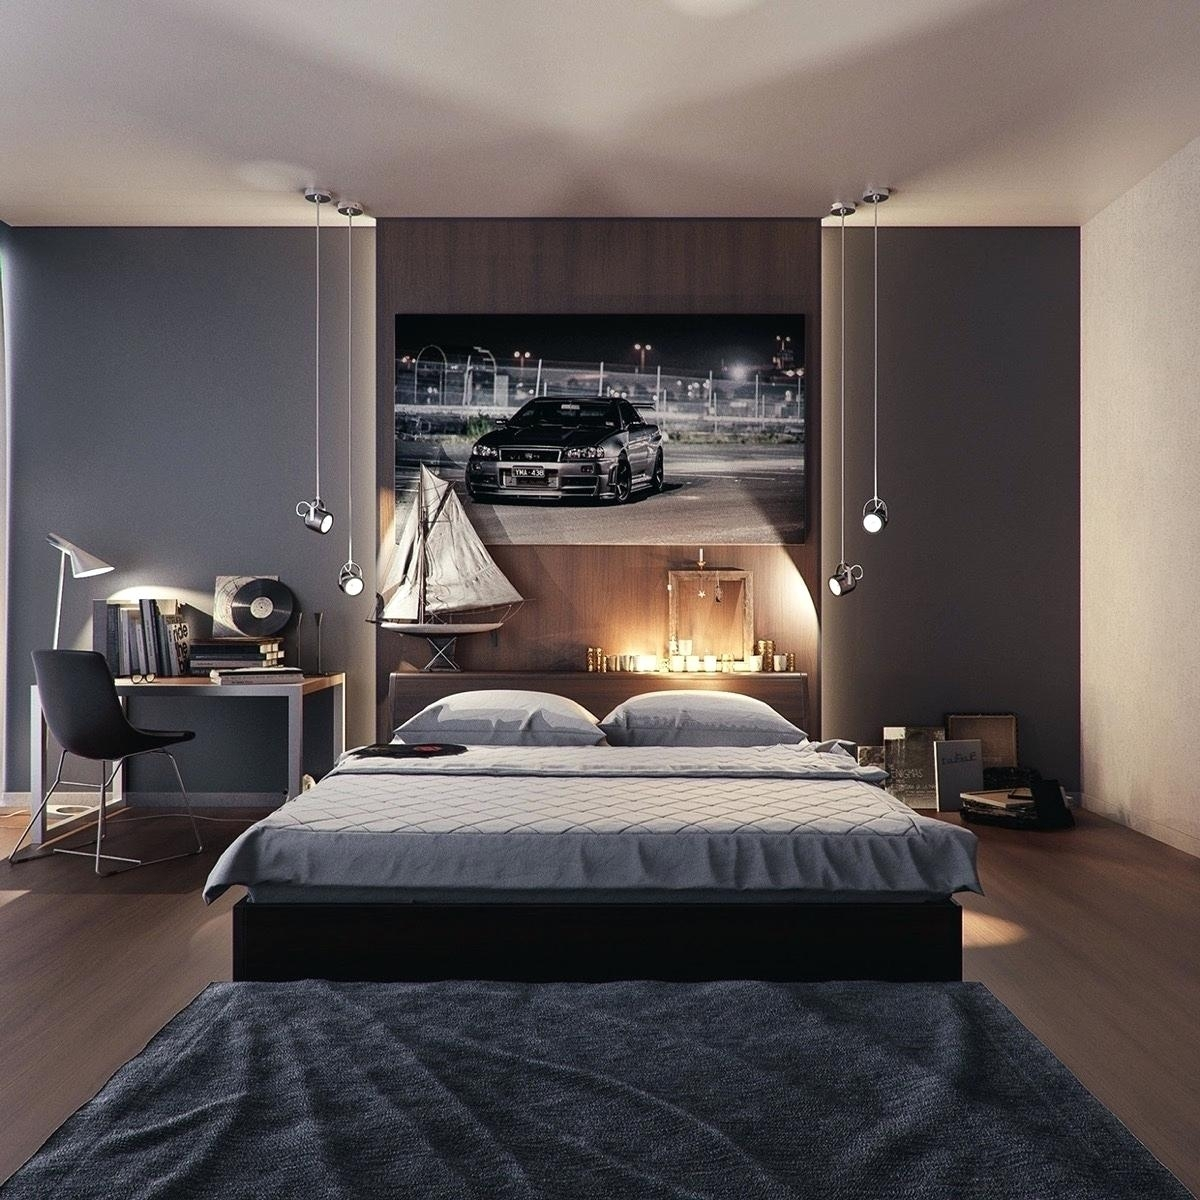 Uncategorized : Decoration Masculine Bedroom Design Manly Sets Intended For Most Recent Manly Wall Art (View 19 of 20)